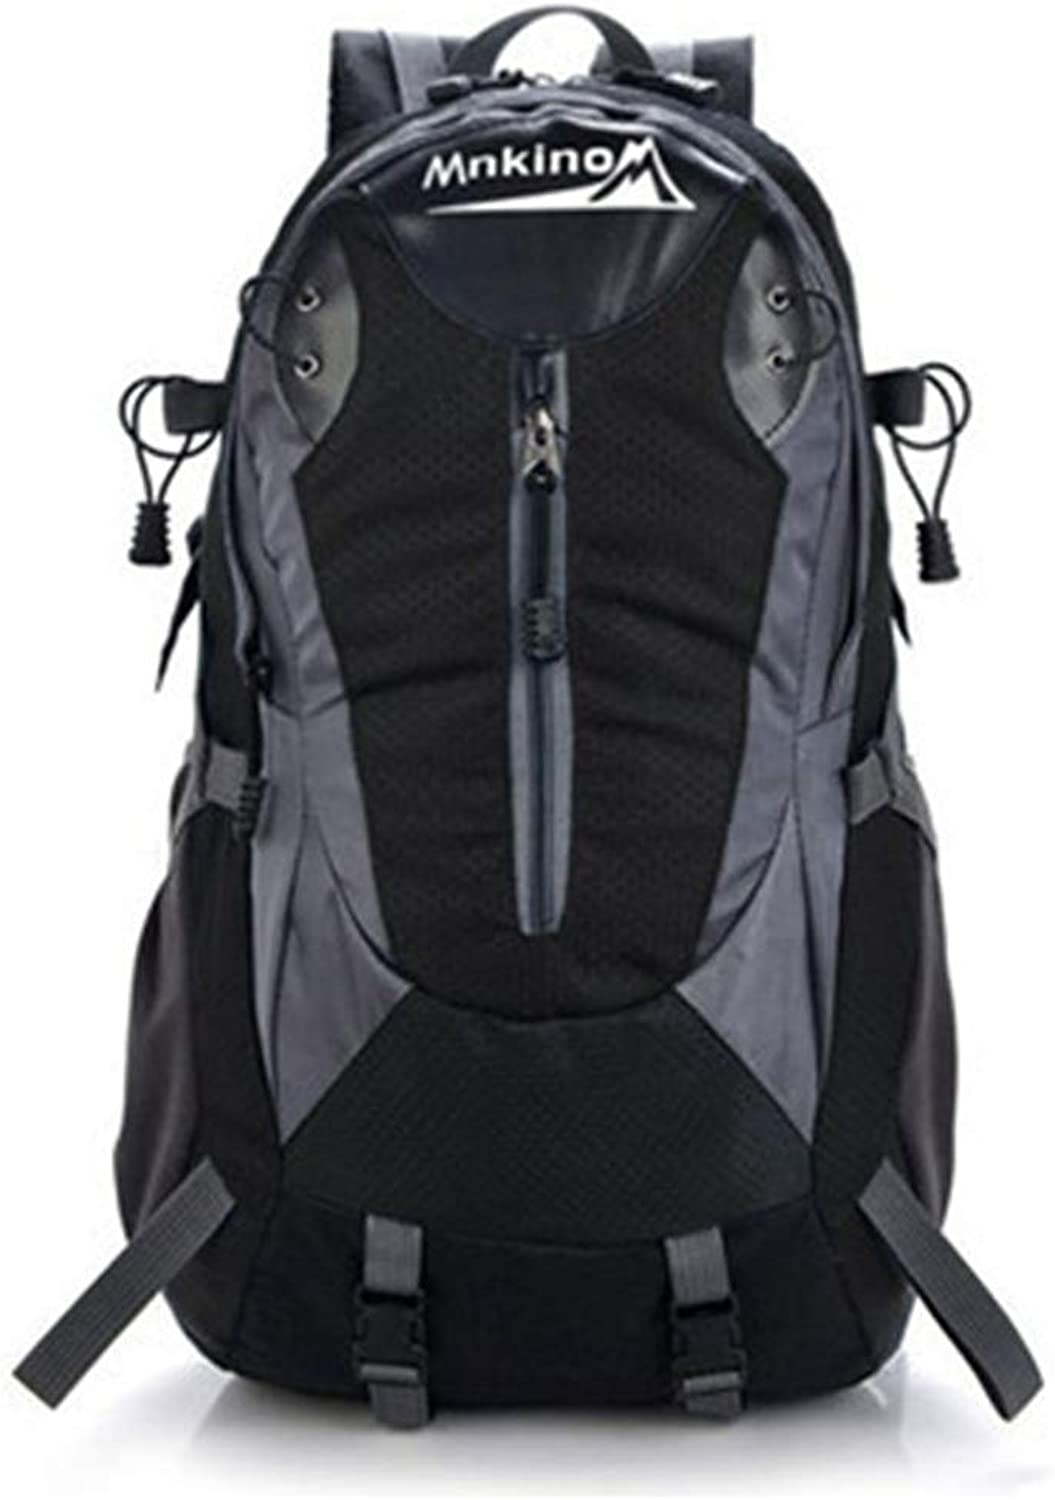 Hiking Backpack Large Capacity Outdoor Mountaineering Bag for Women  Rainproof Sports Backpack Hiking Day Backpack Suitable for Mountain Skiing Mountaineering Bag (color   Black, Size   One Size)